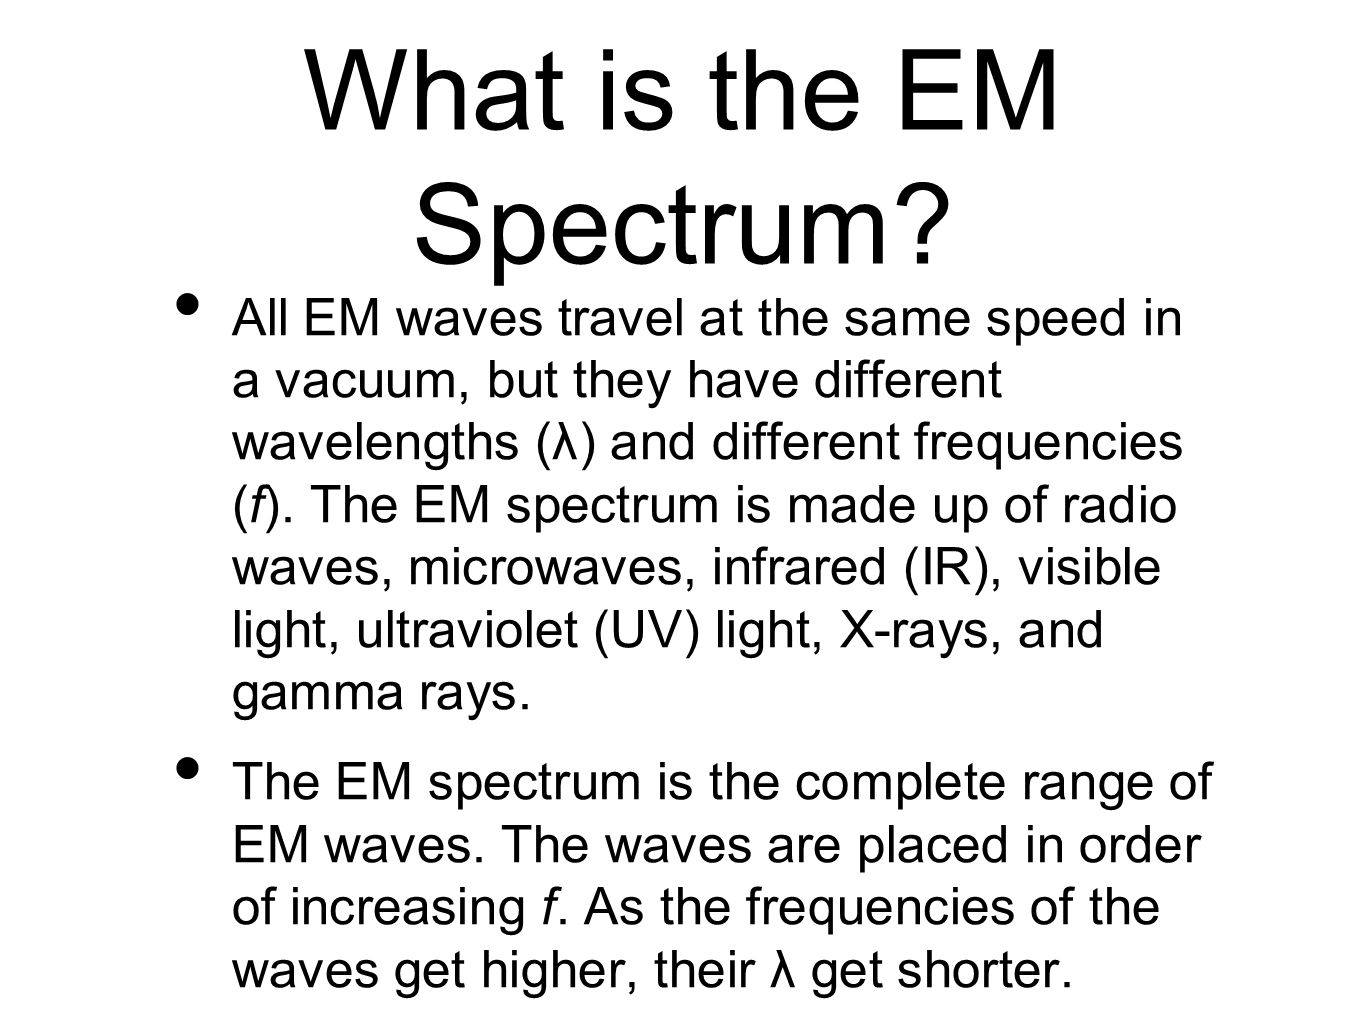 What is the EM Spectrum? All EM waves travel at the same speed in a vacuum, but they have different wavelengths (λ) and different frequencies (f). The